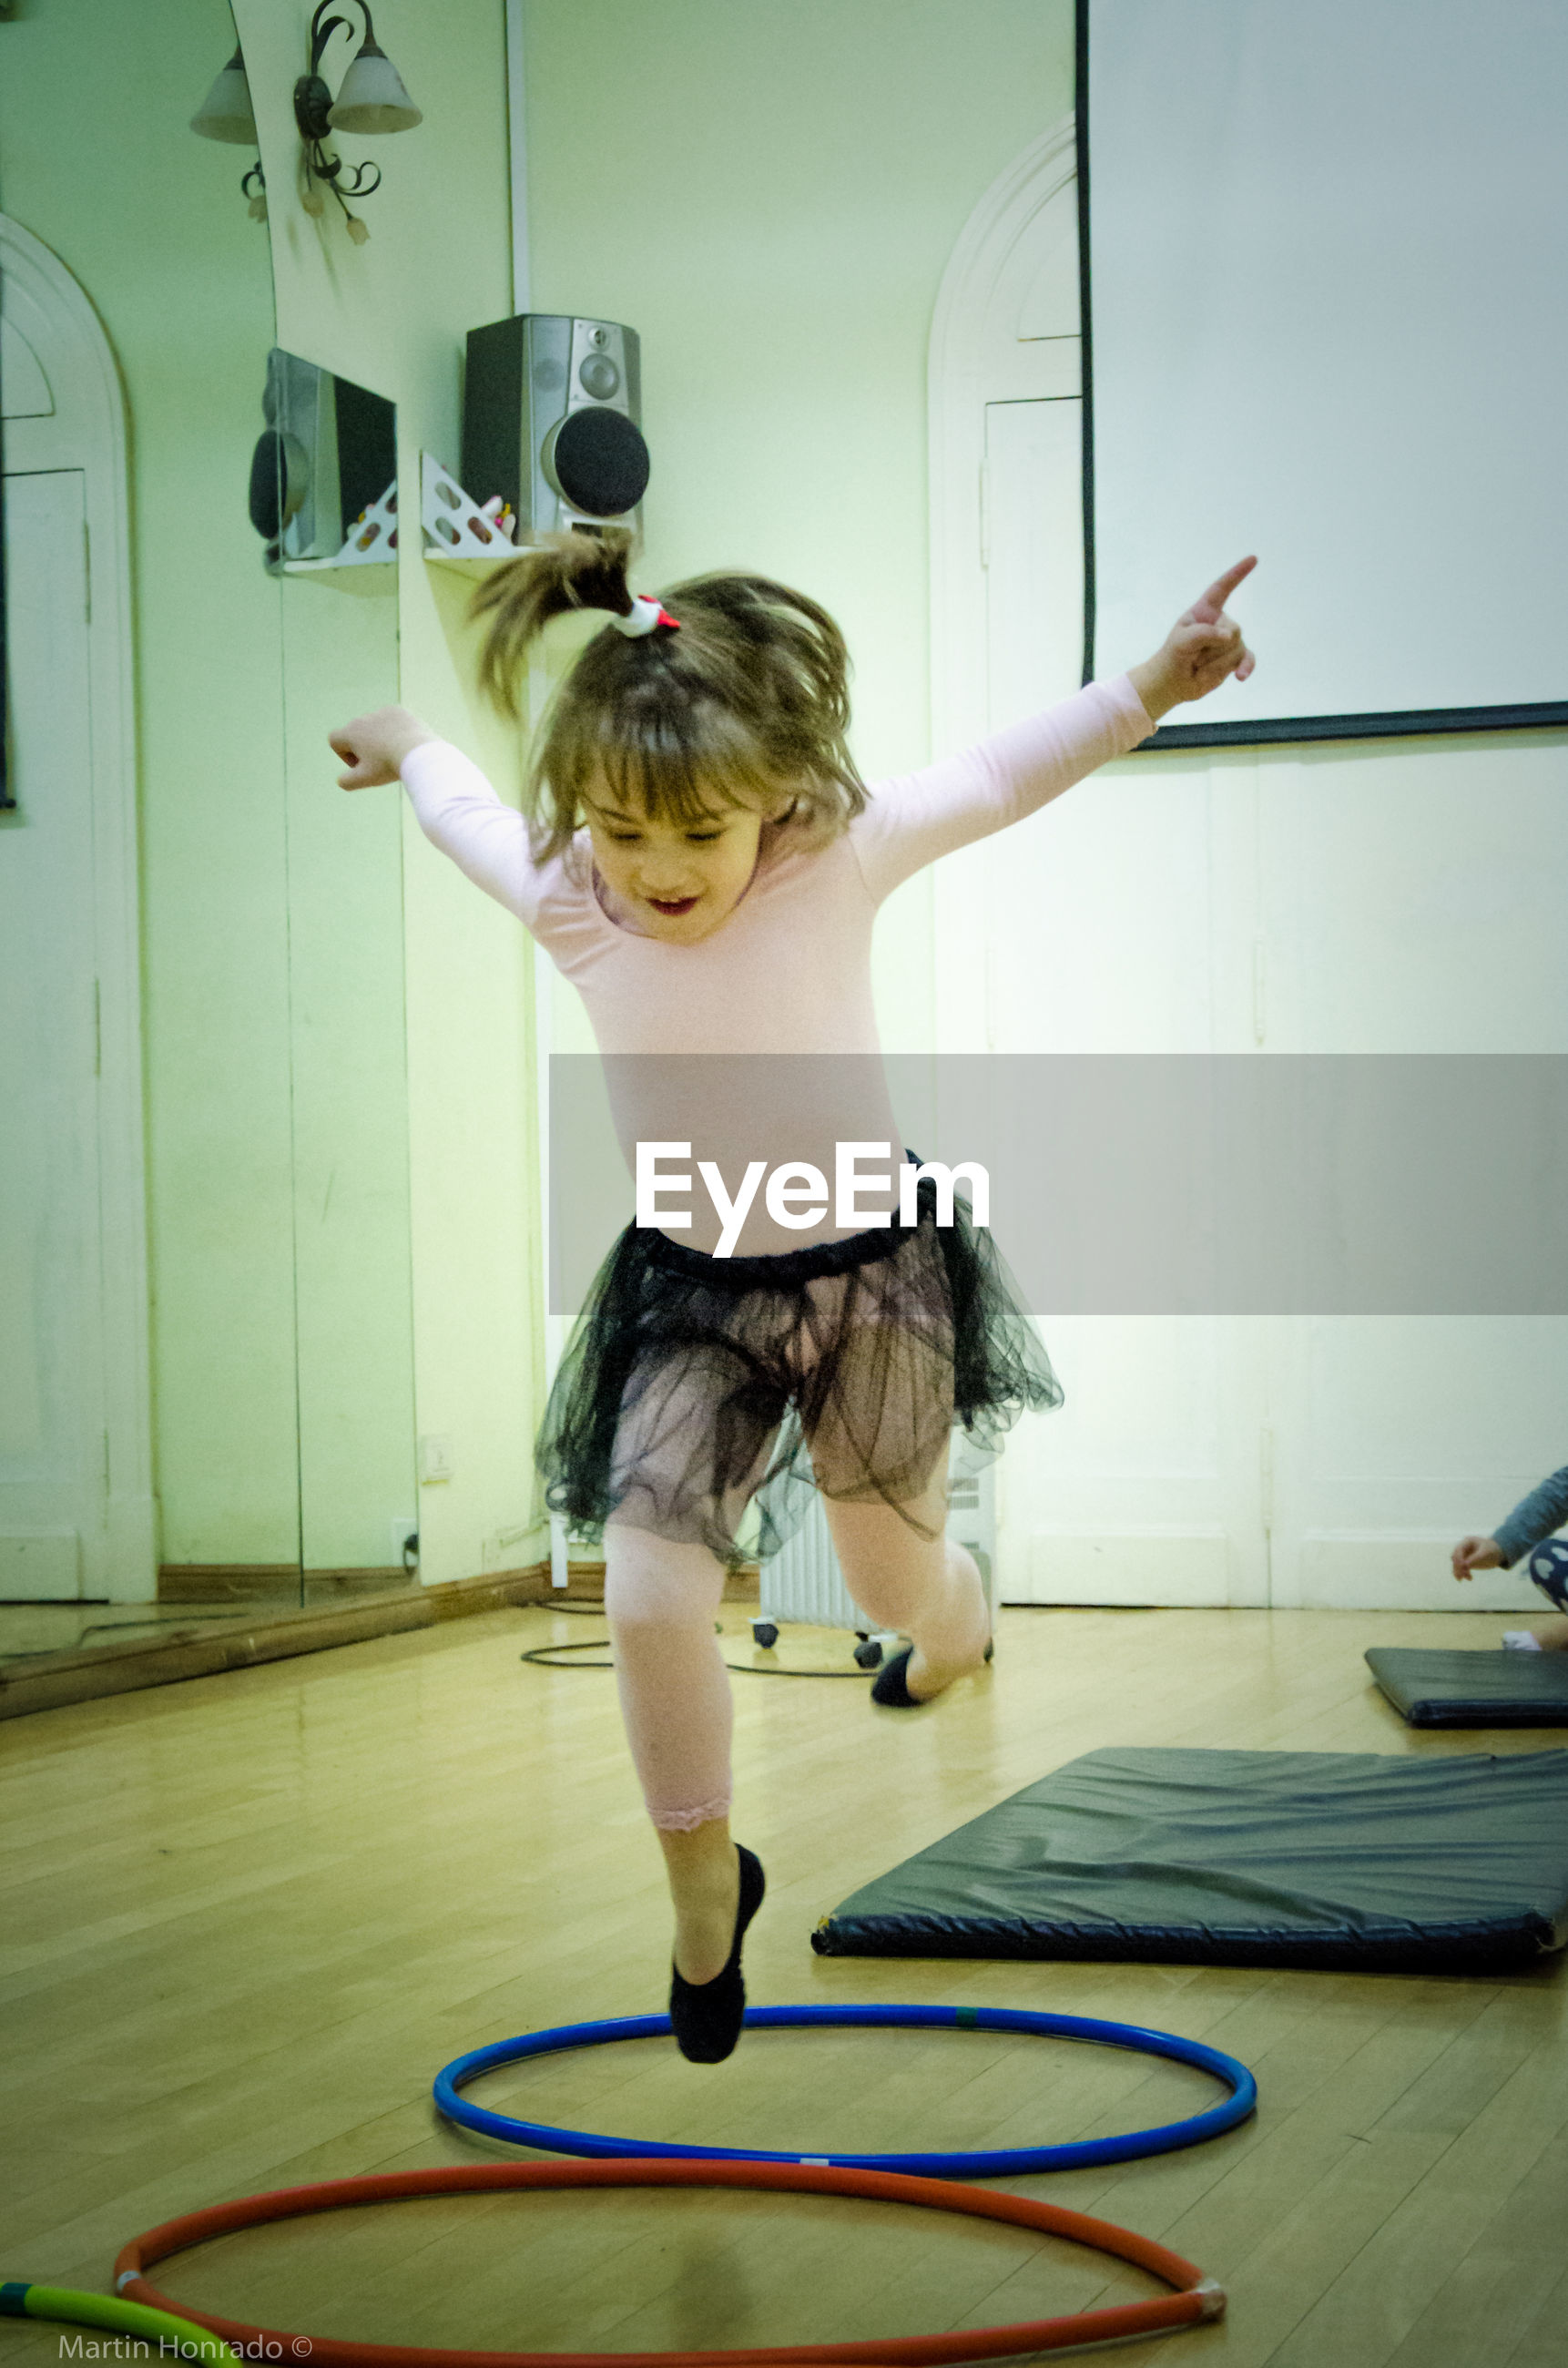 Front view of girl jumping over hoops in dance studio